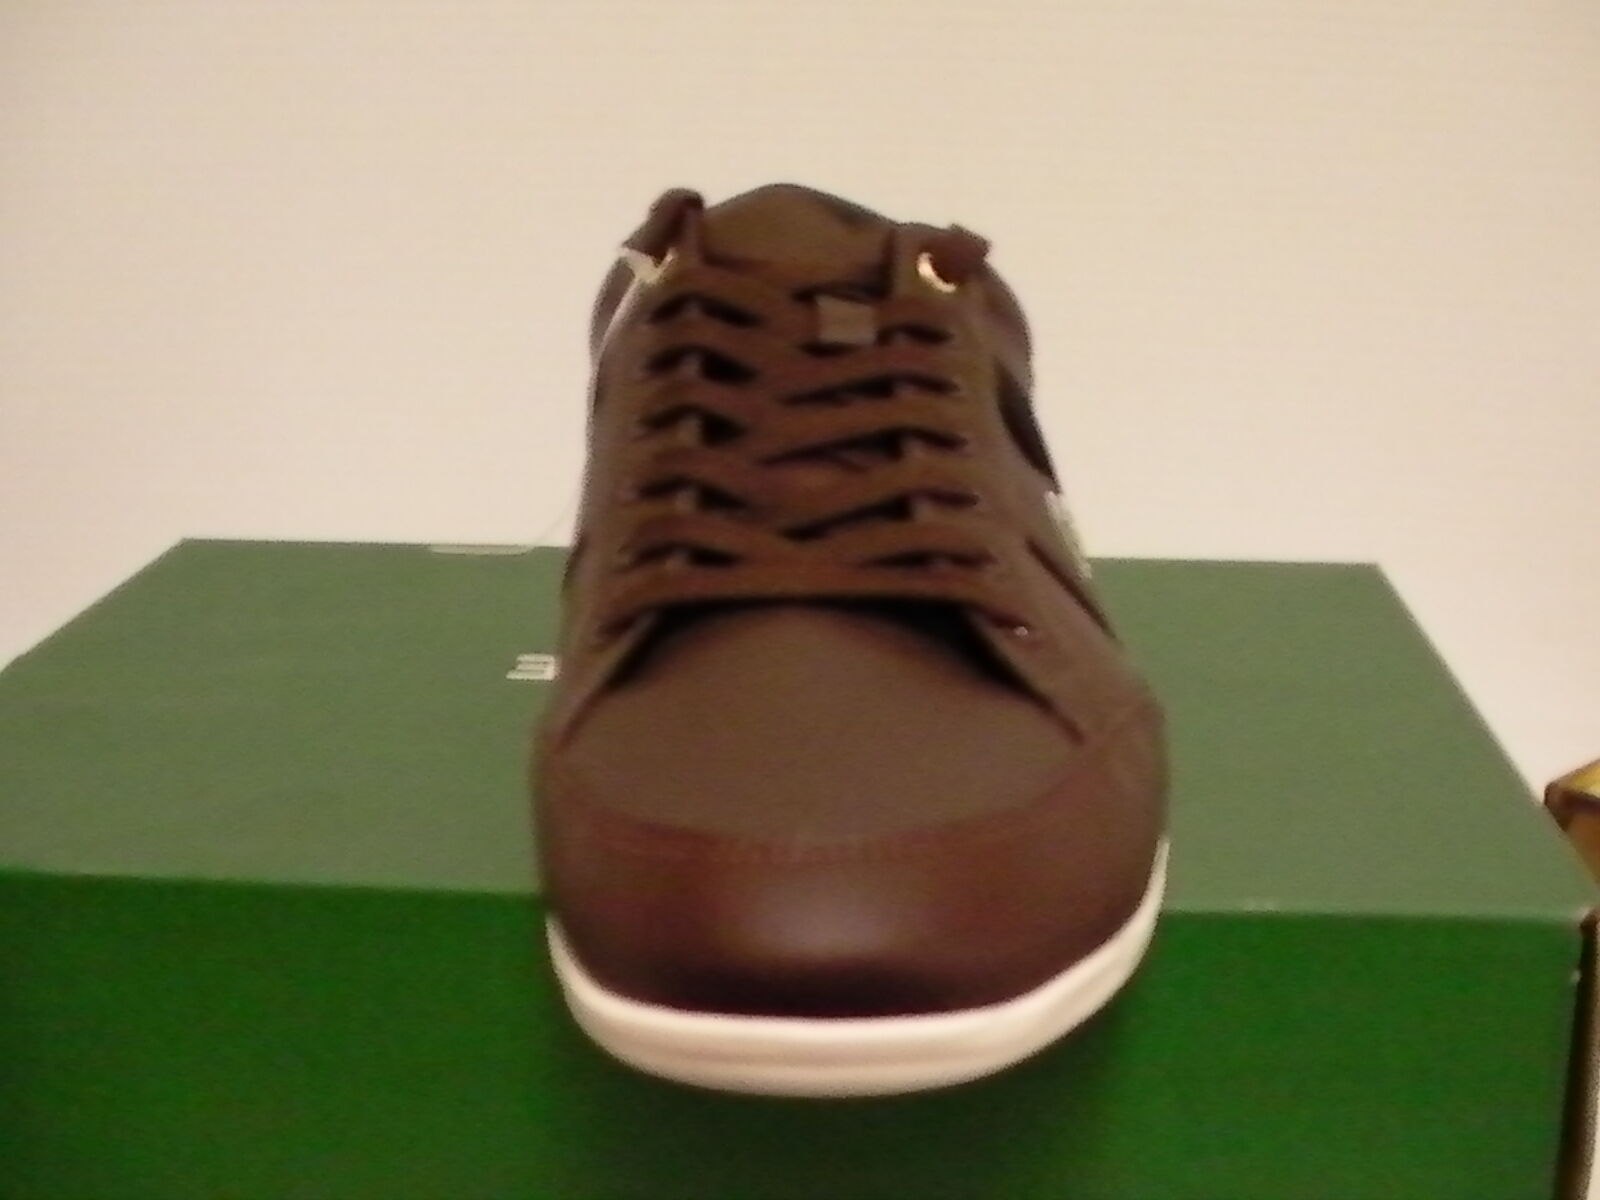 Lacoste shoes chaymon cr cr chaymon us spm leather dark brown black size 7.5 new with box 9d6b24